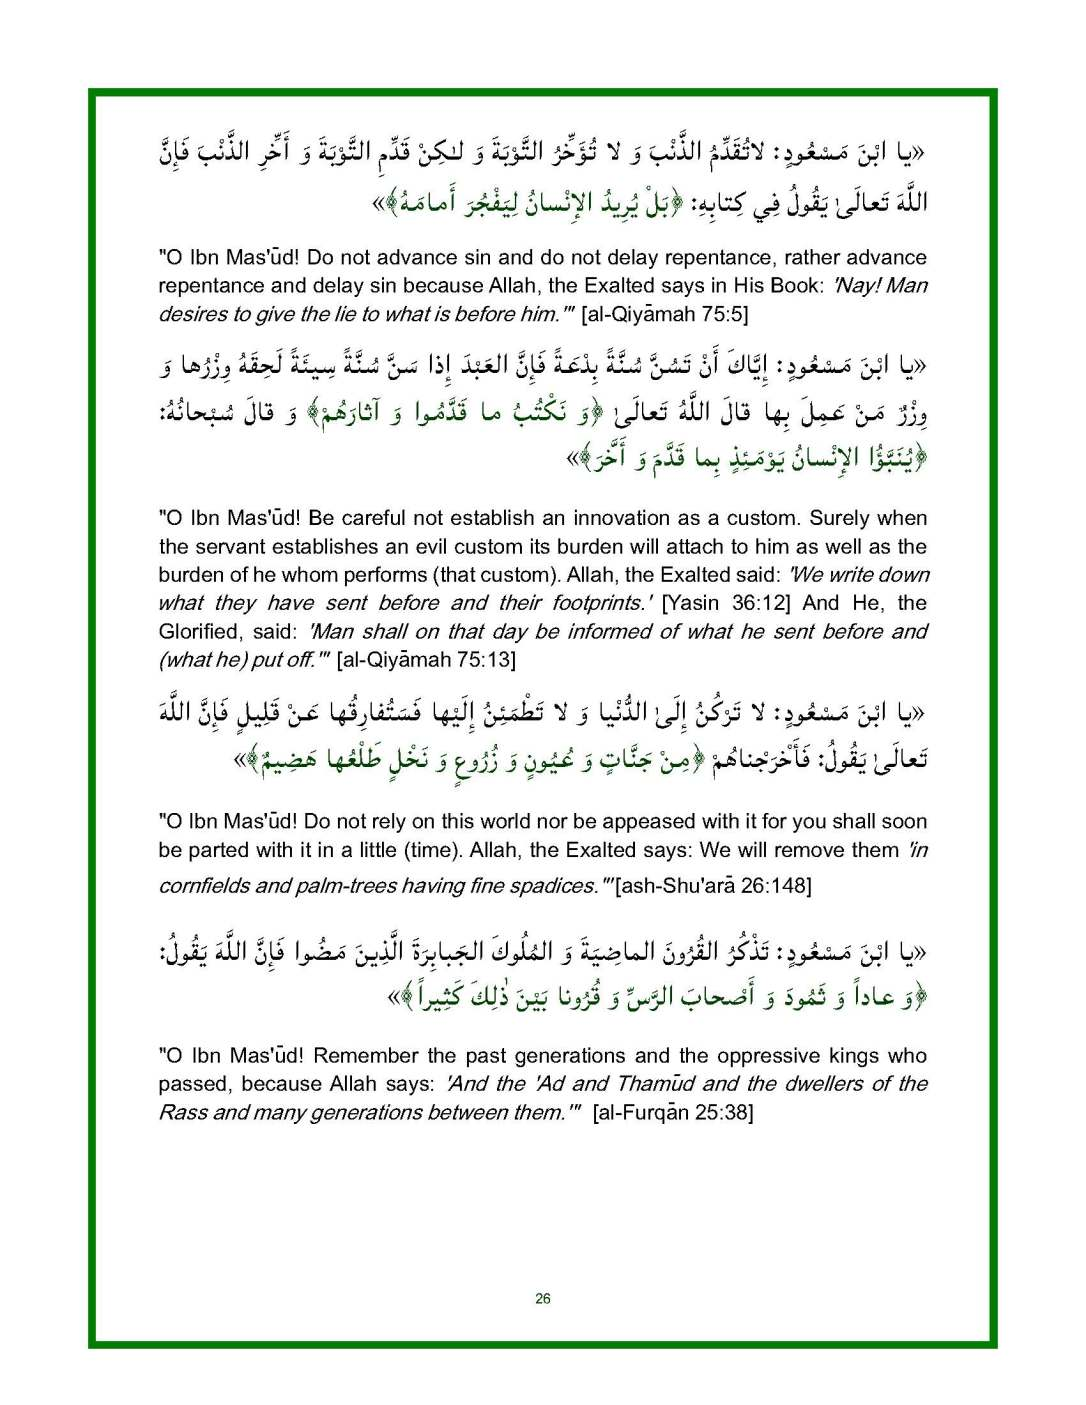 Spiritual-Advice-of-the-Messenger-of-Allah-for-Ibn-Masud-unlocked_Page_26